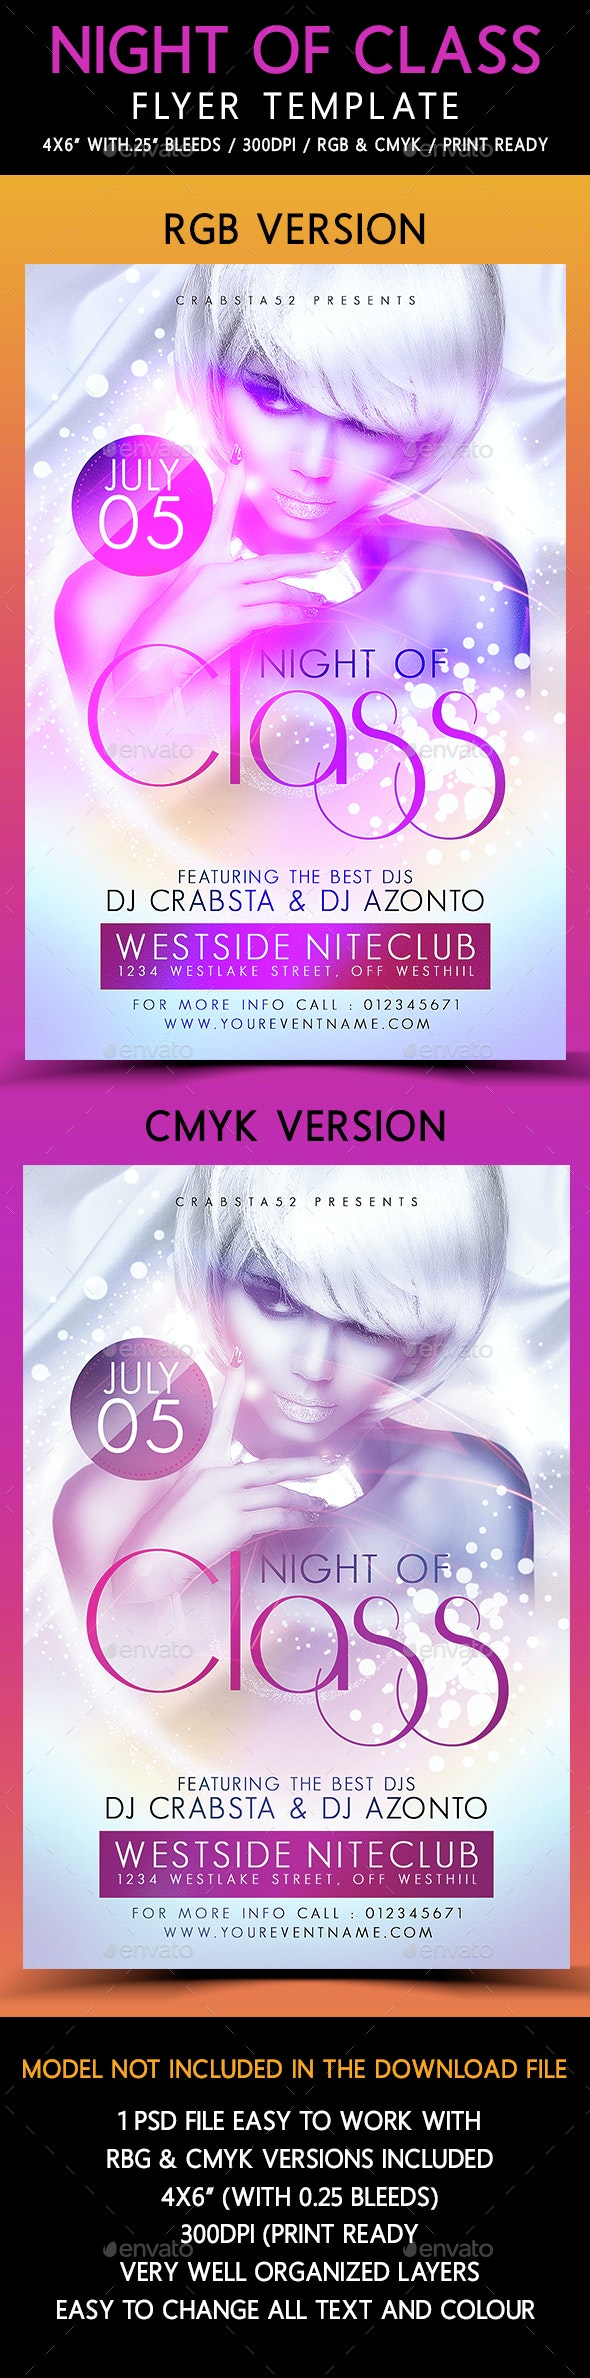 Night of Class Flyer Template - Flyers Print Templates